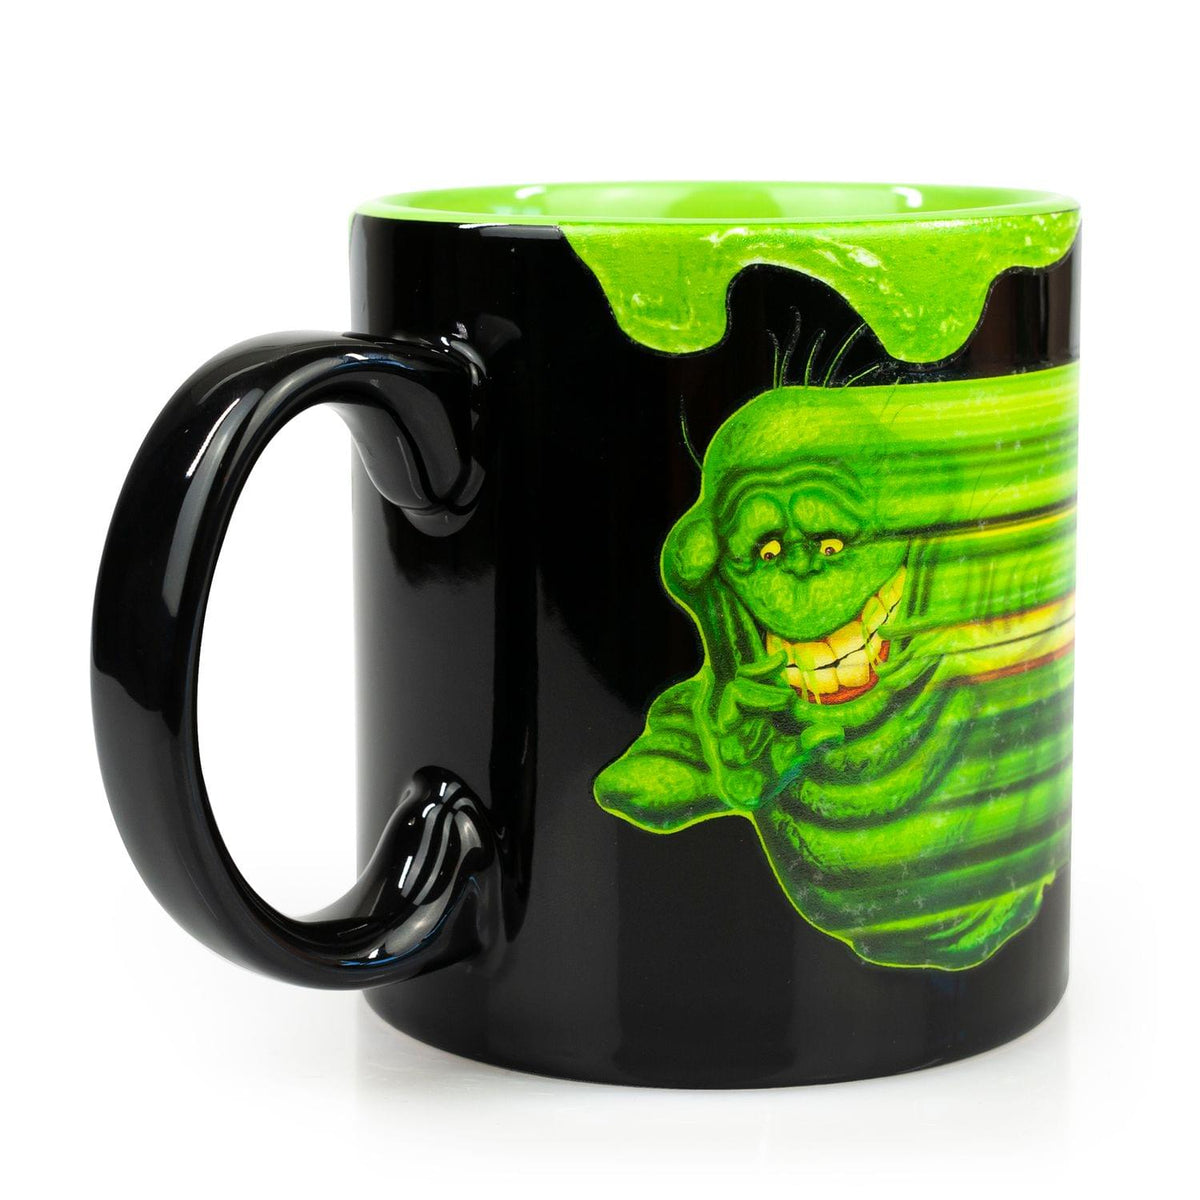 OFFICIAL Ghostbusters Coffee Mug | Glow-In-The-Dark Slimer | Ceramic 20 Oz. Cup